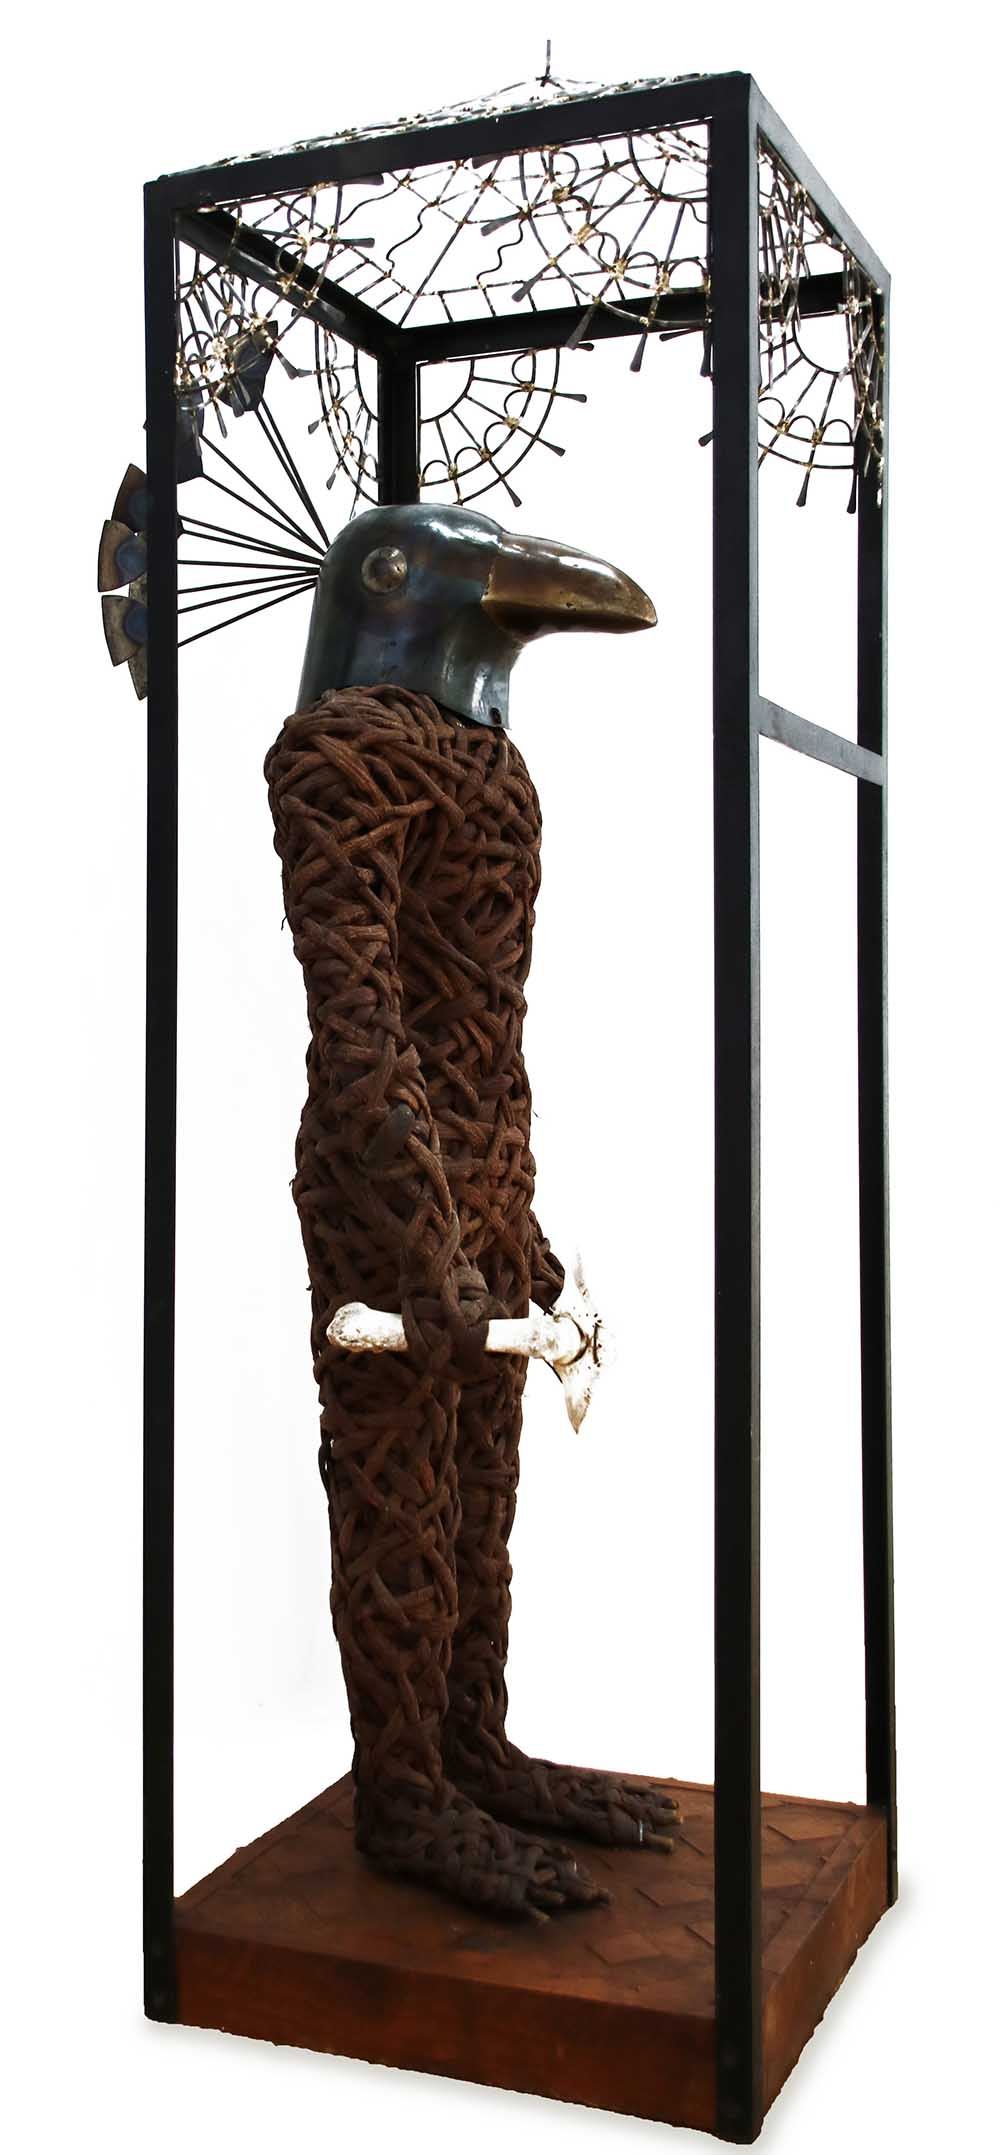 Jacques Dhont Cain 2019 Material,wattle bark,metal,bone,wood. approx- 45 x 60 x 153 cm